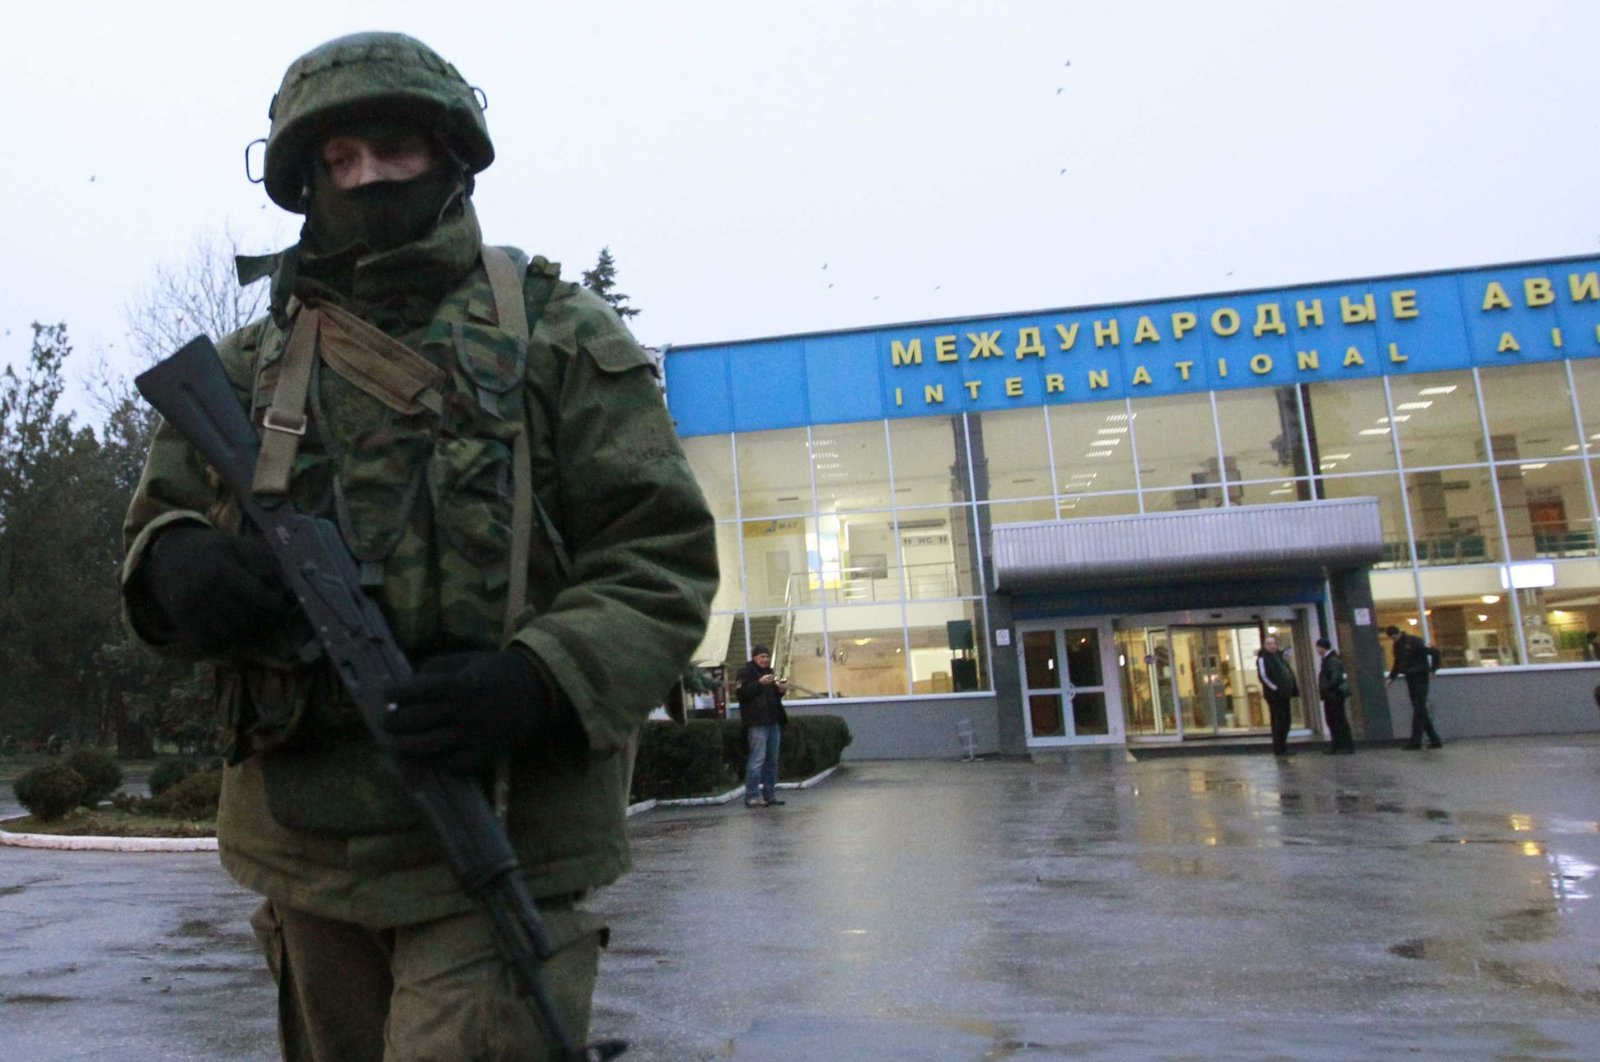 A Russian patrol stands at the international airport in Crimea.